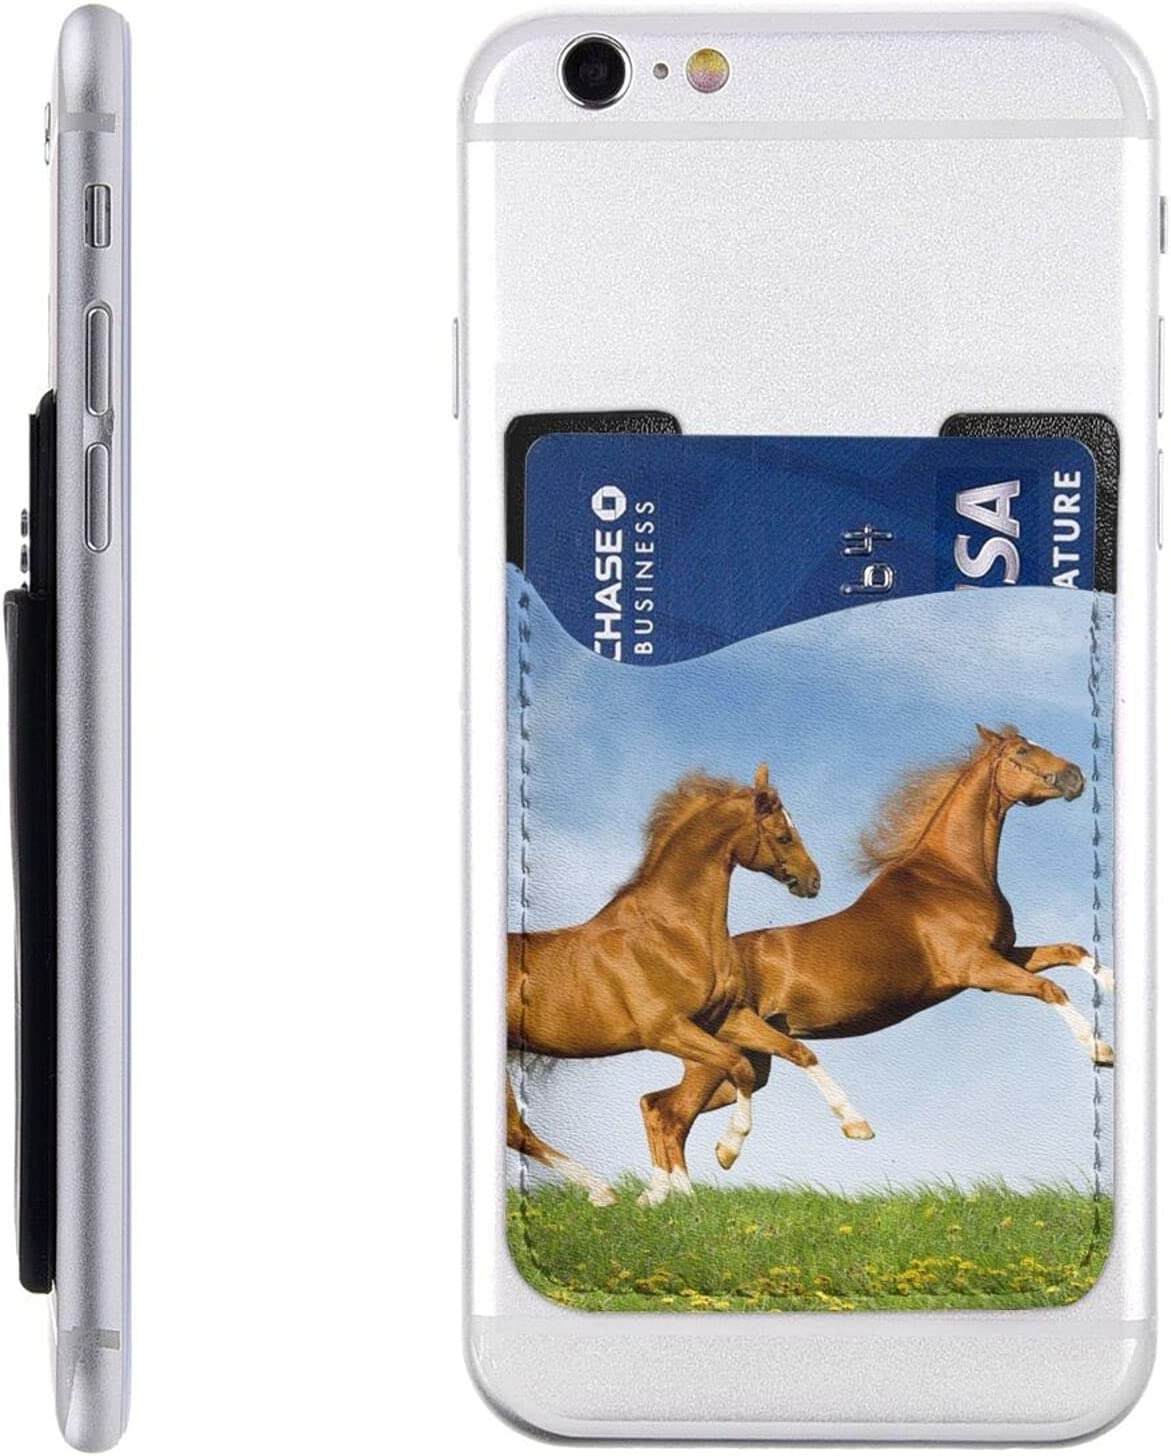 Jump Horse Phone Card Holder Sle Our shop most popular On Max 52% OFF Wallet Cell Stick